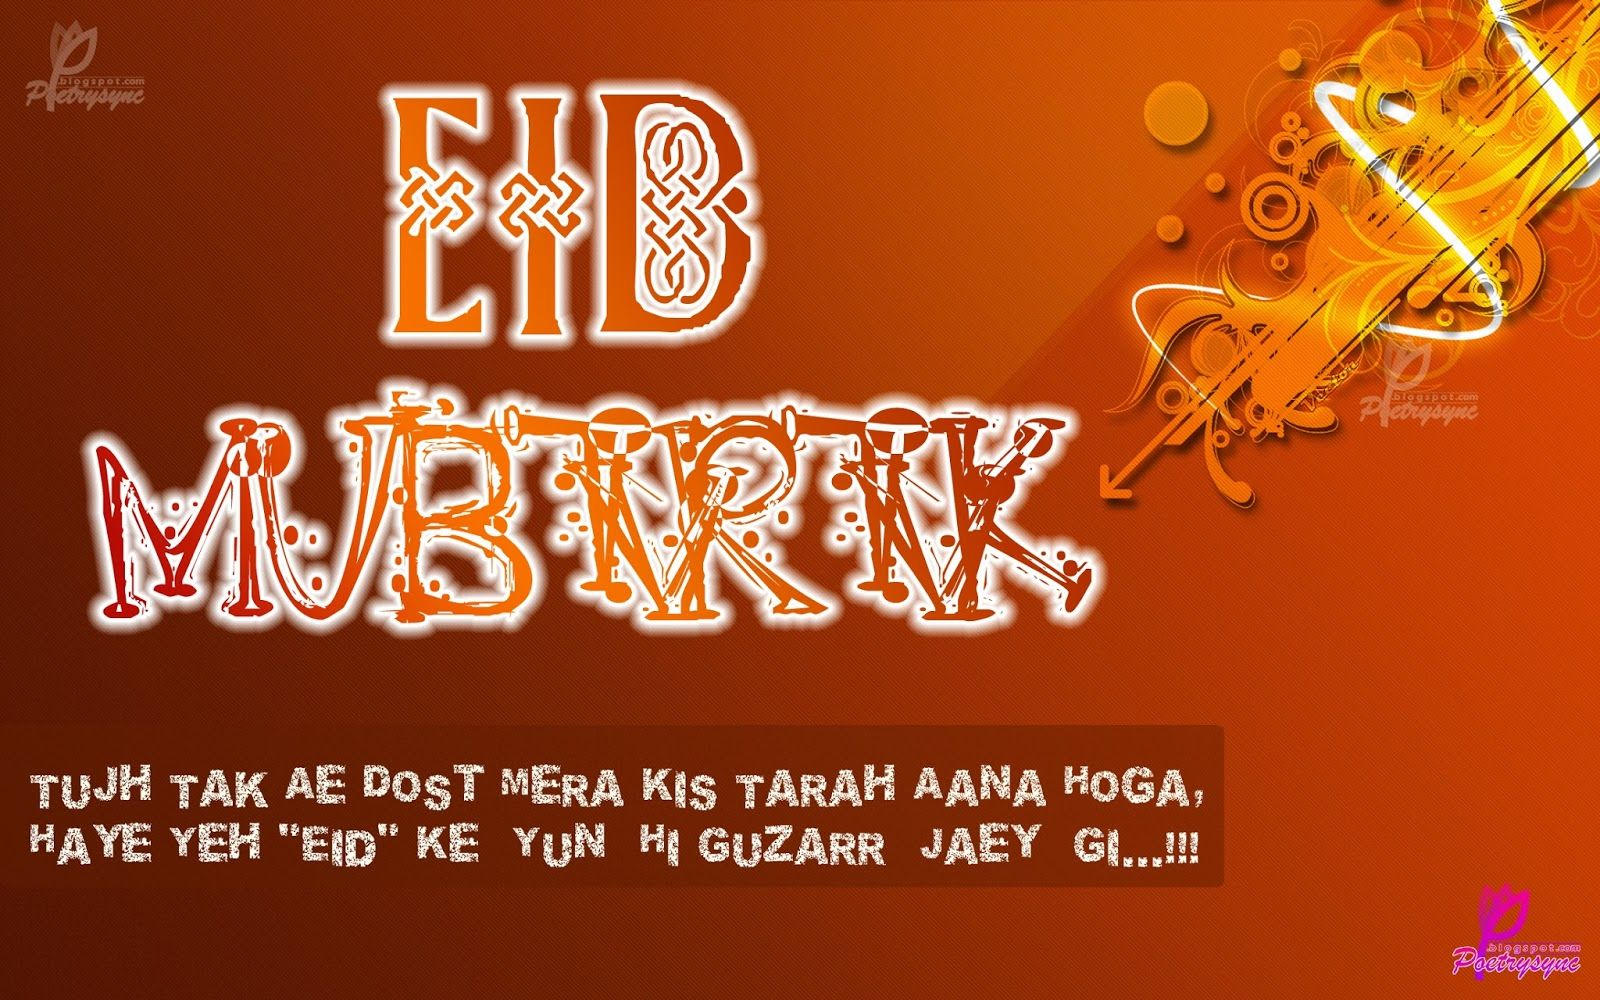 Pin by greetings everyday on bakra eid al adha bakrid wishes happy eid mubarak wishes 2017 eid mubarak wishes quotes messages kristyandbryce Image collections